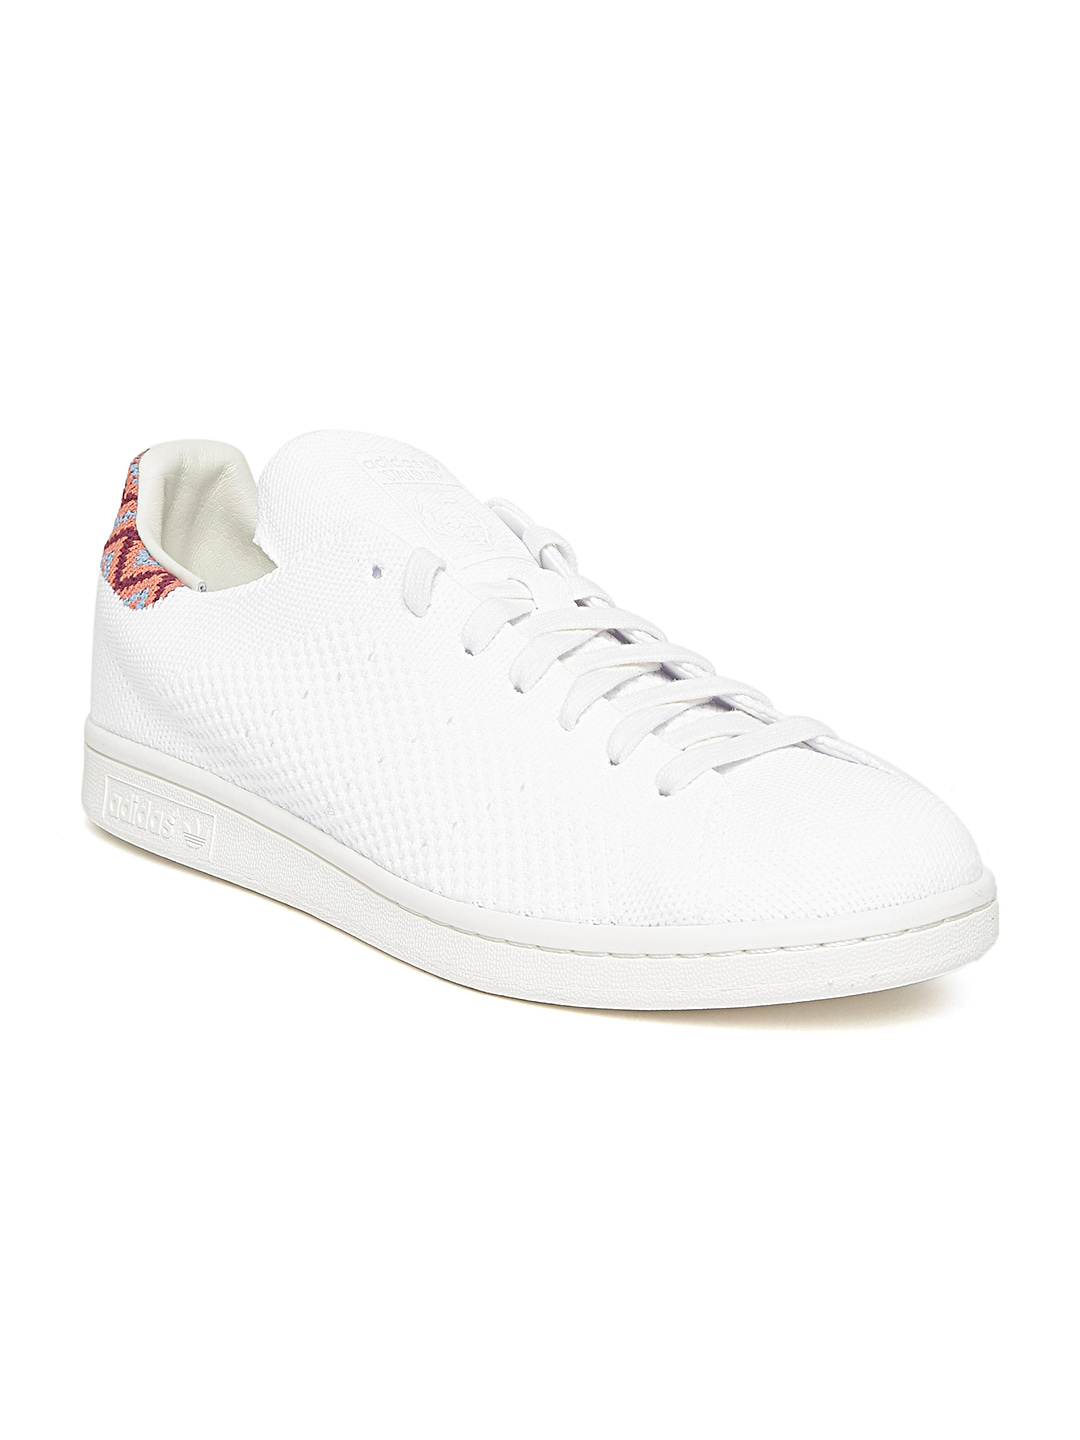 2a3cd88b2459 Adidas Stan Smith Sneakers - Buy Stan Smith Shoes and Sneakers Online in  India - Myntra